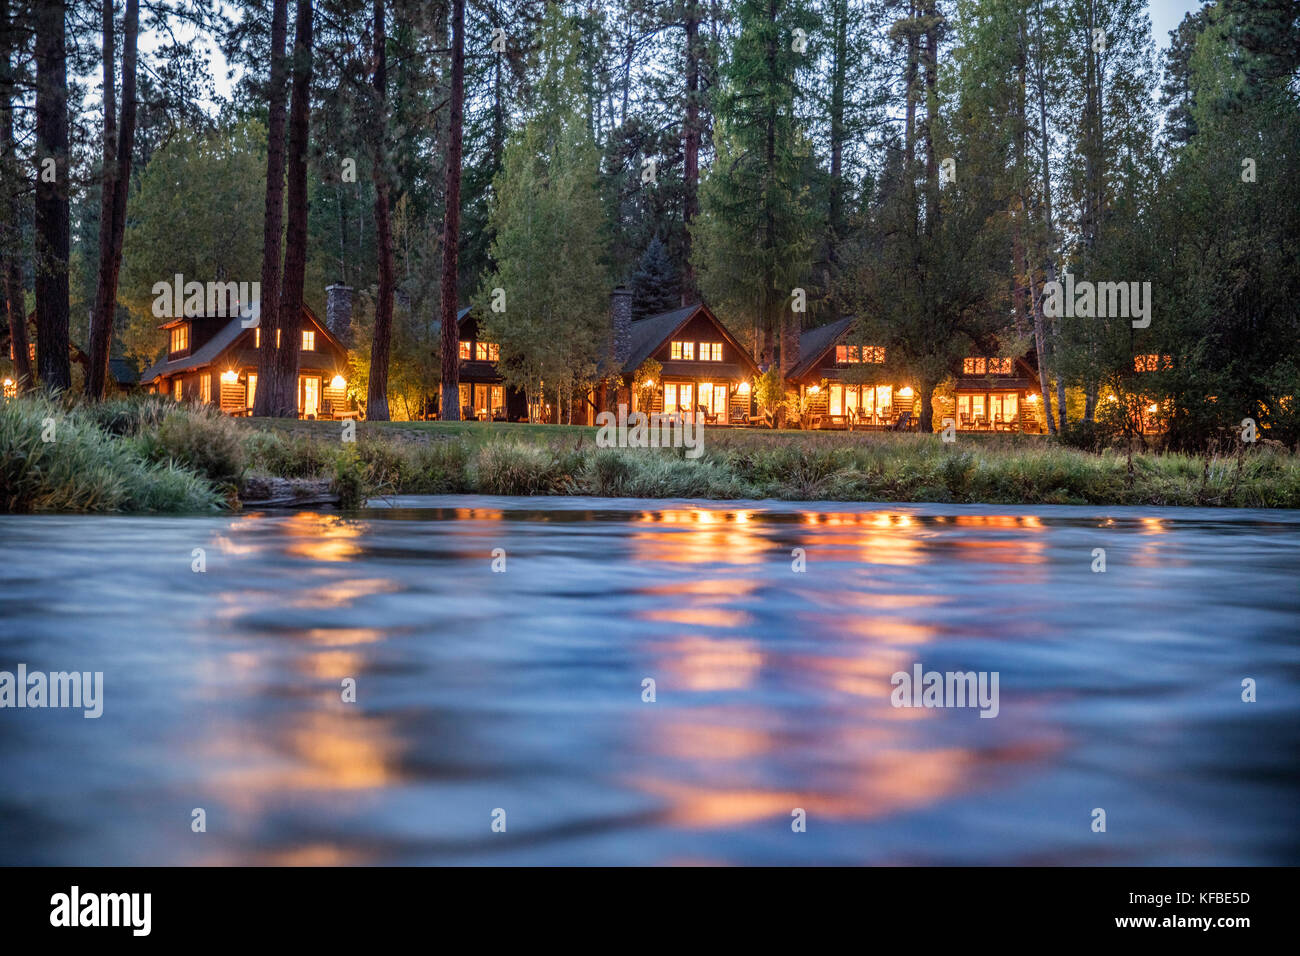 USA, Oregon, Camp Sherman, Metolius River Resort, View of cabins from River - Stock Image